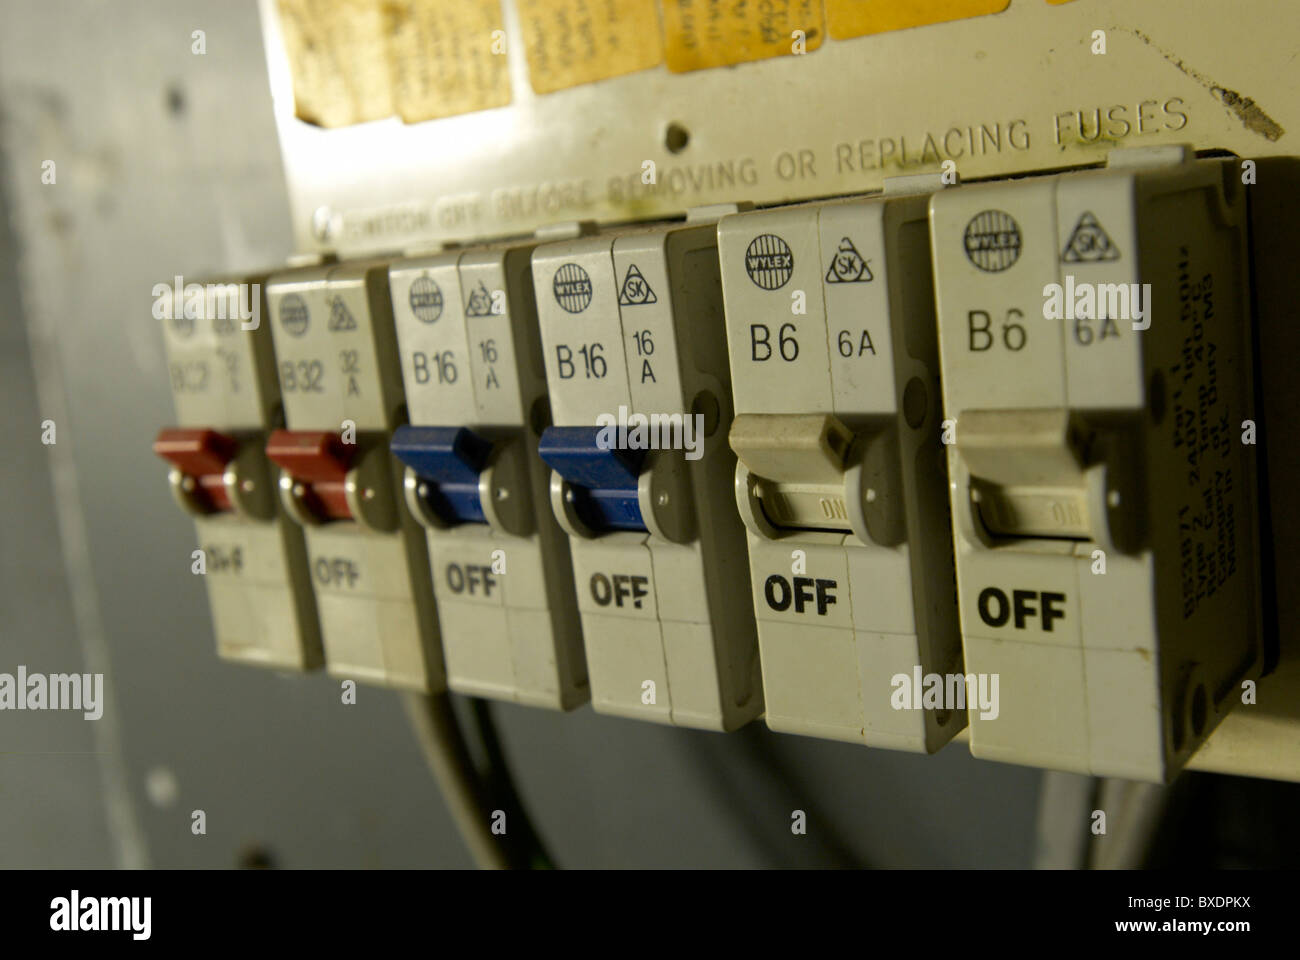 old electrical installation fuse box stock photo royalty old electrical installation fuse box